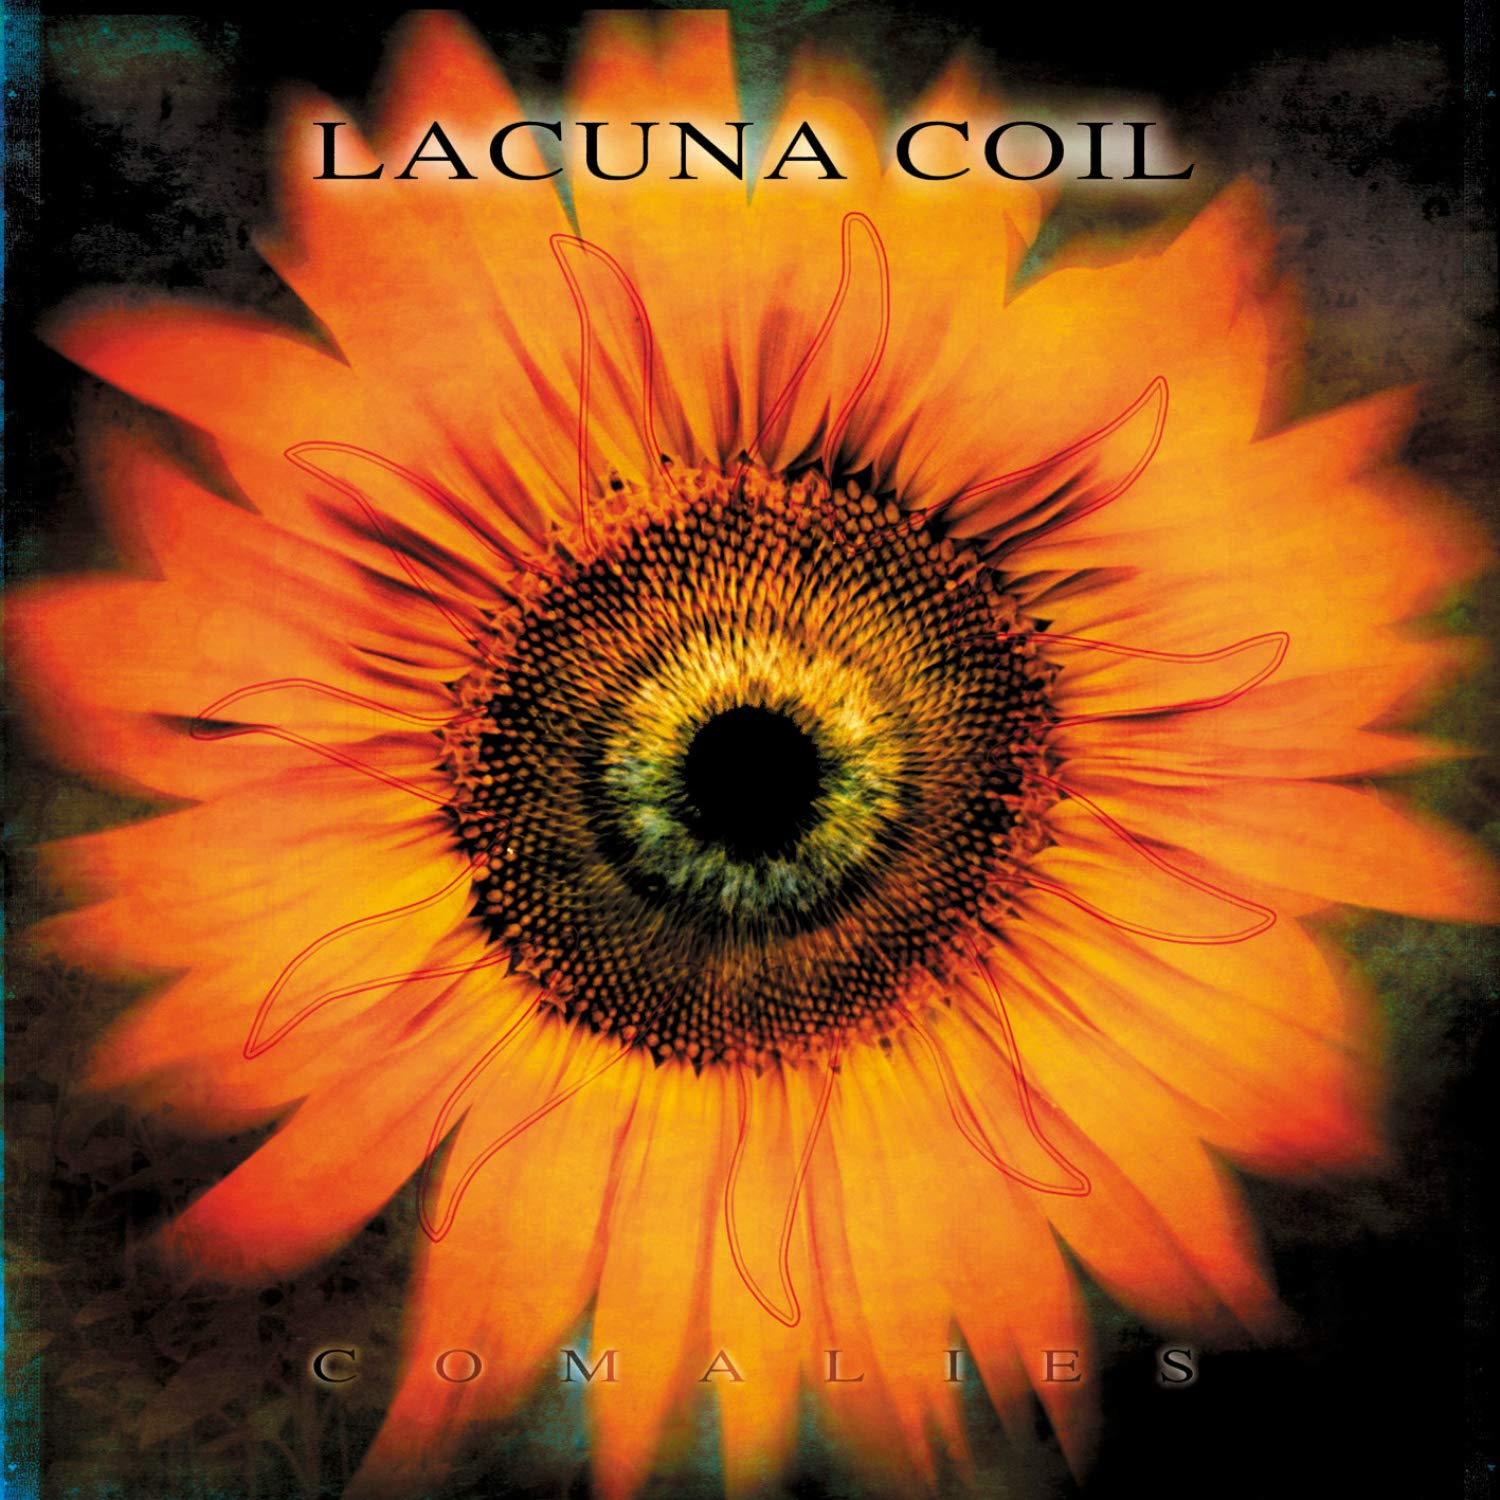 Lacuna Coil - Comalies [Indie Exclusive Limited Edition Opaque Brown LP]